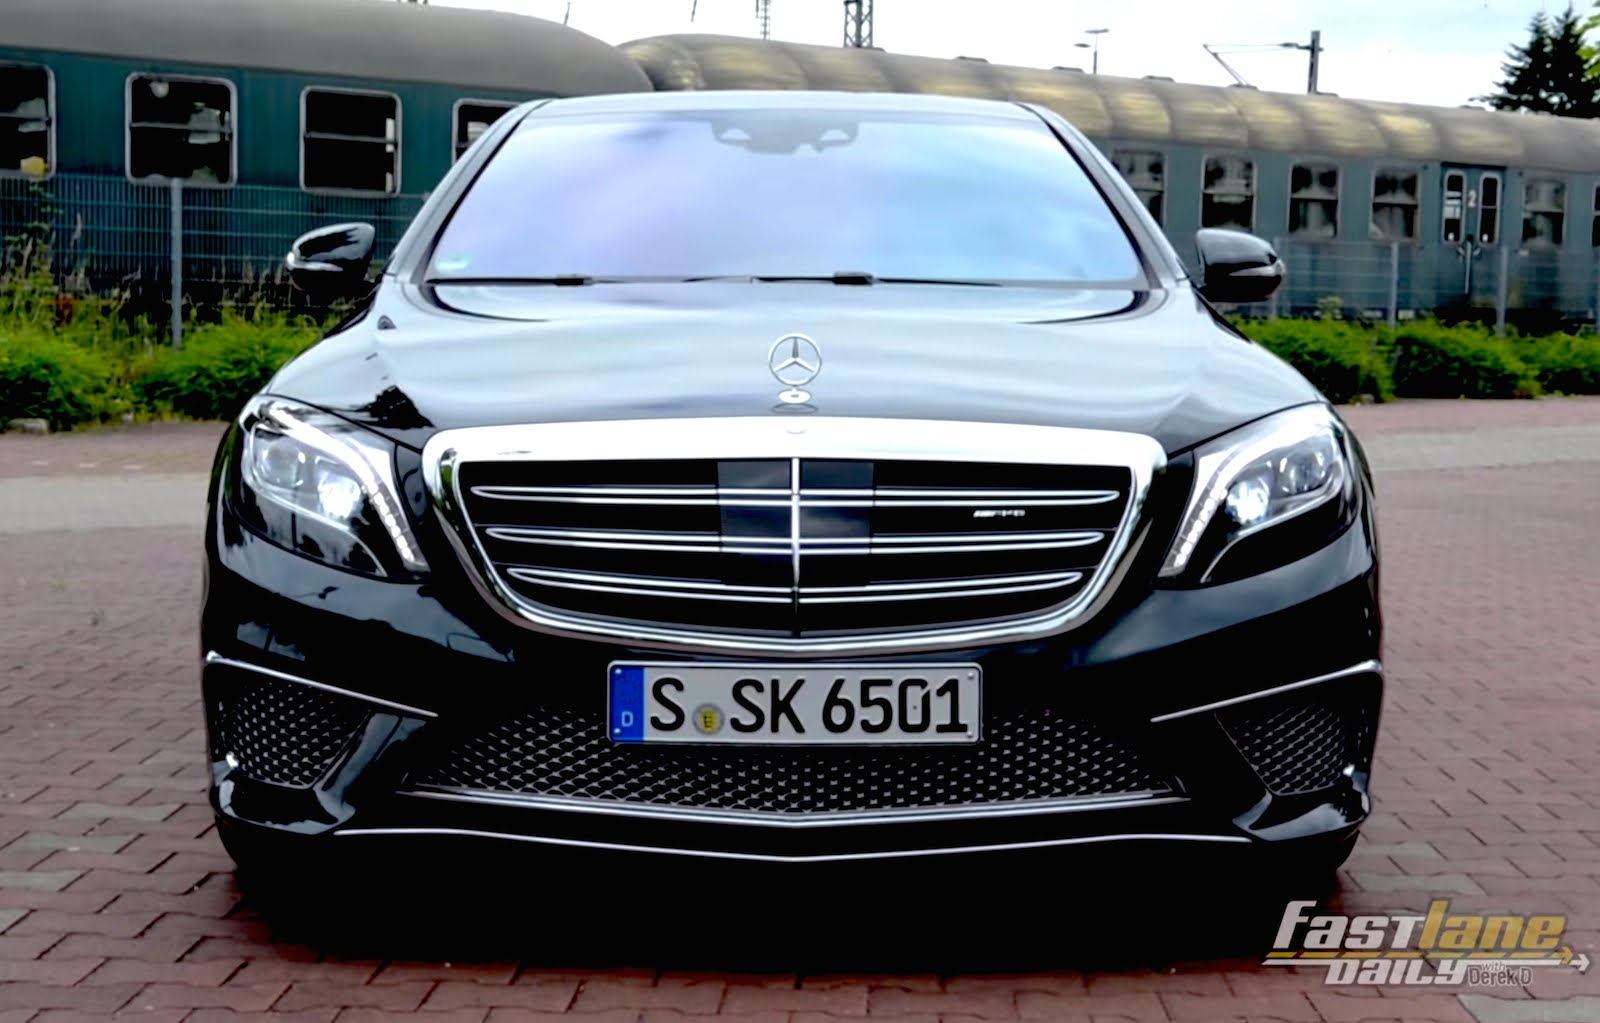 2015 Mercedes-Benz S65AMG Car Review Video